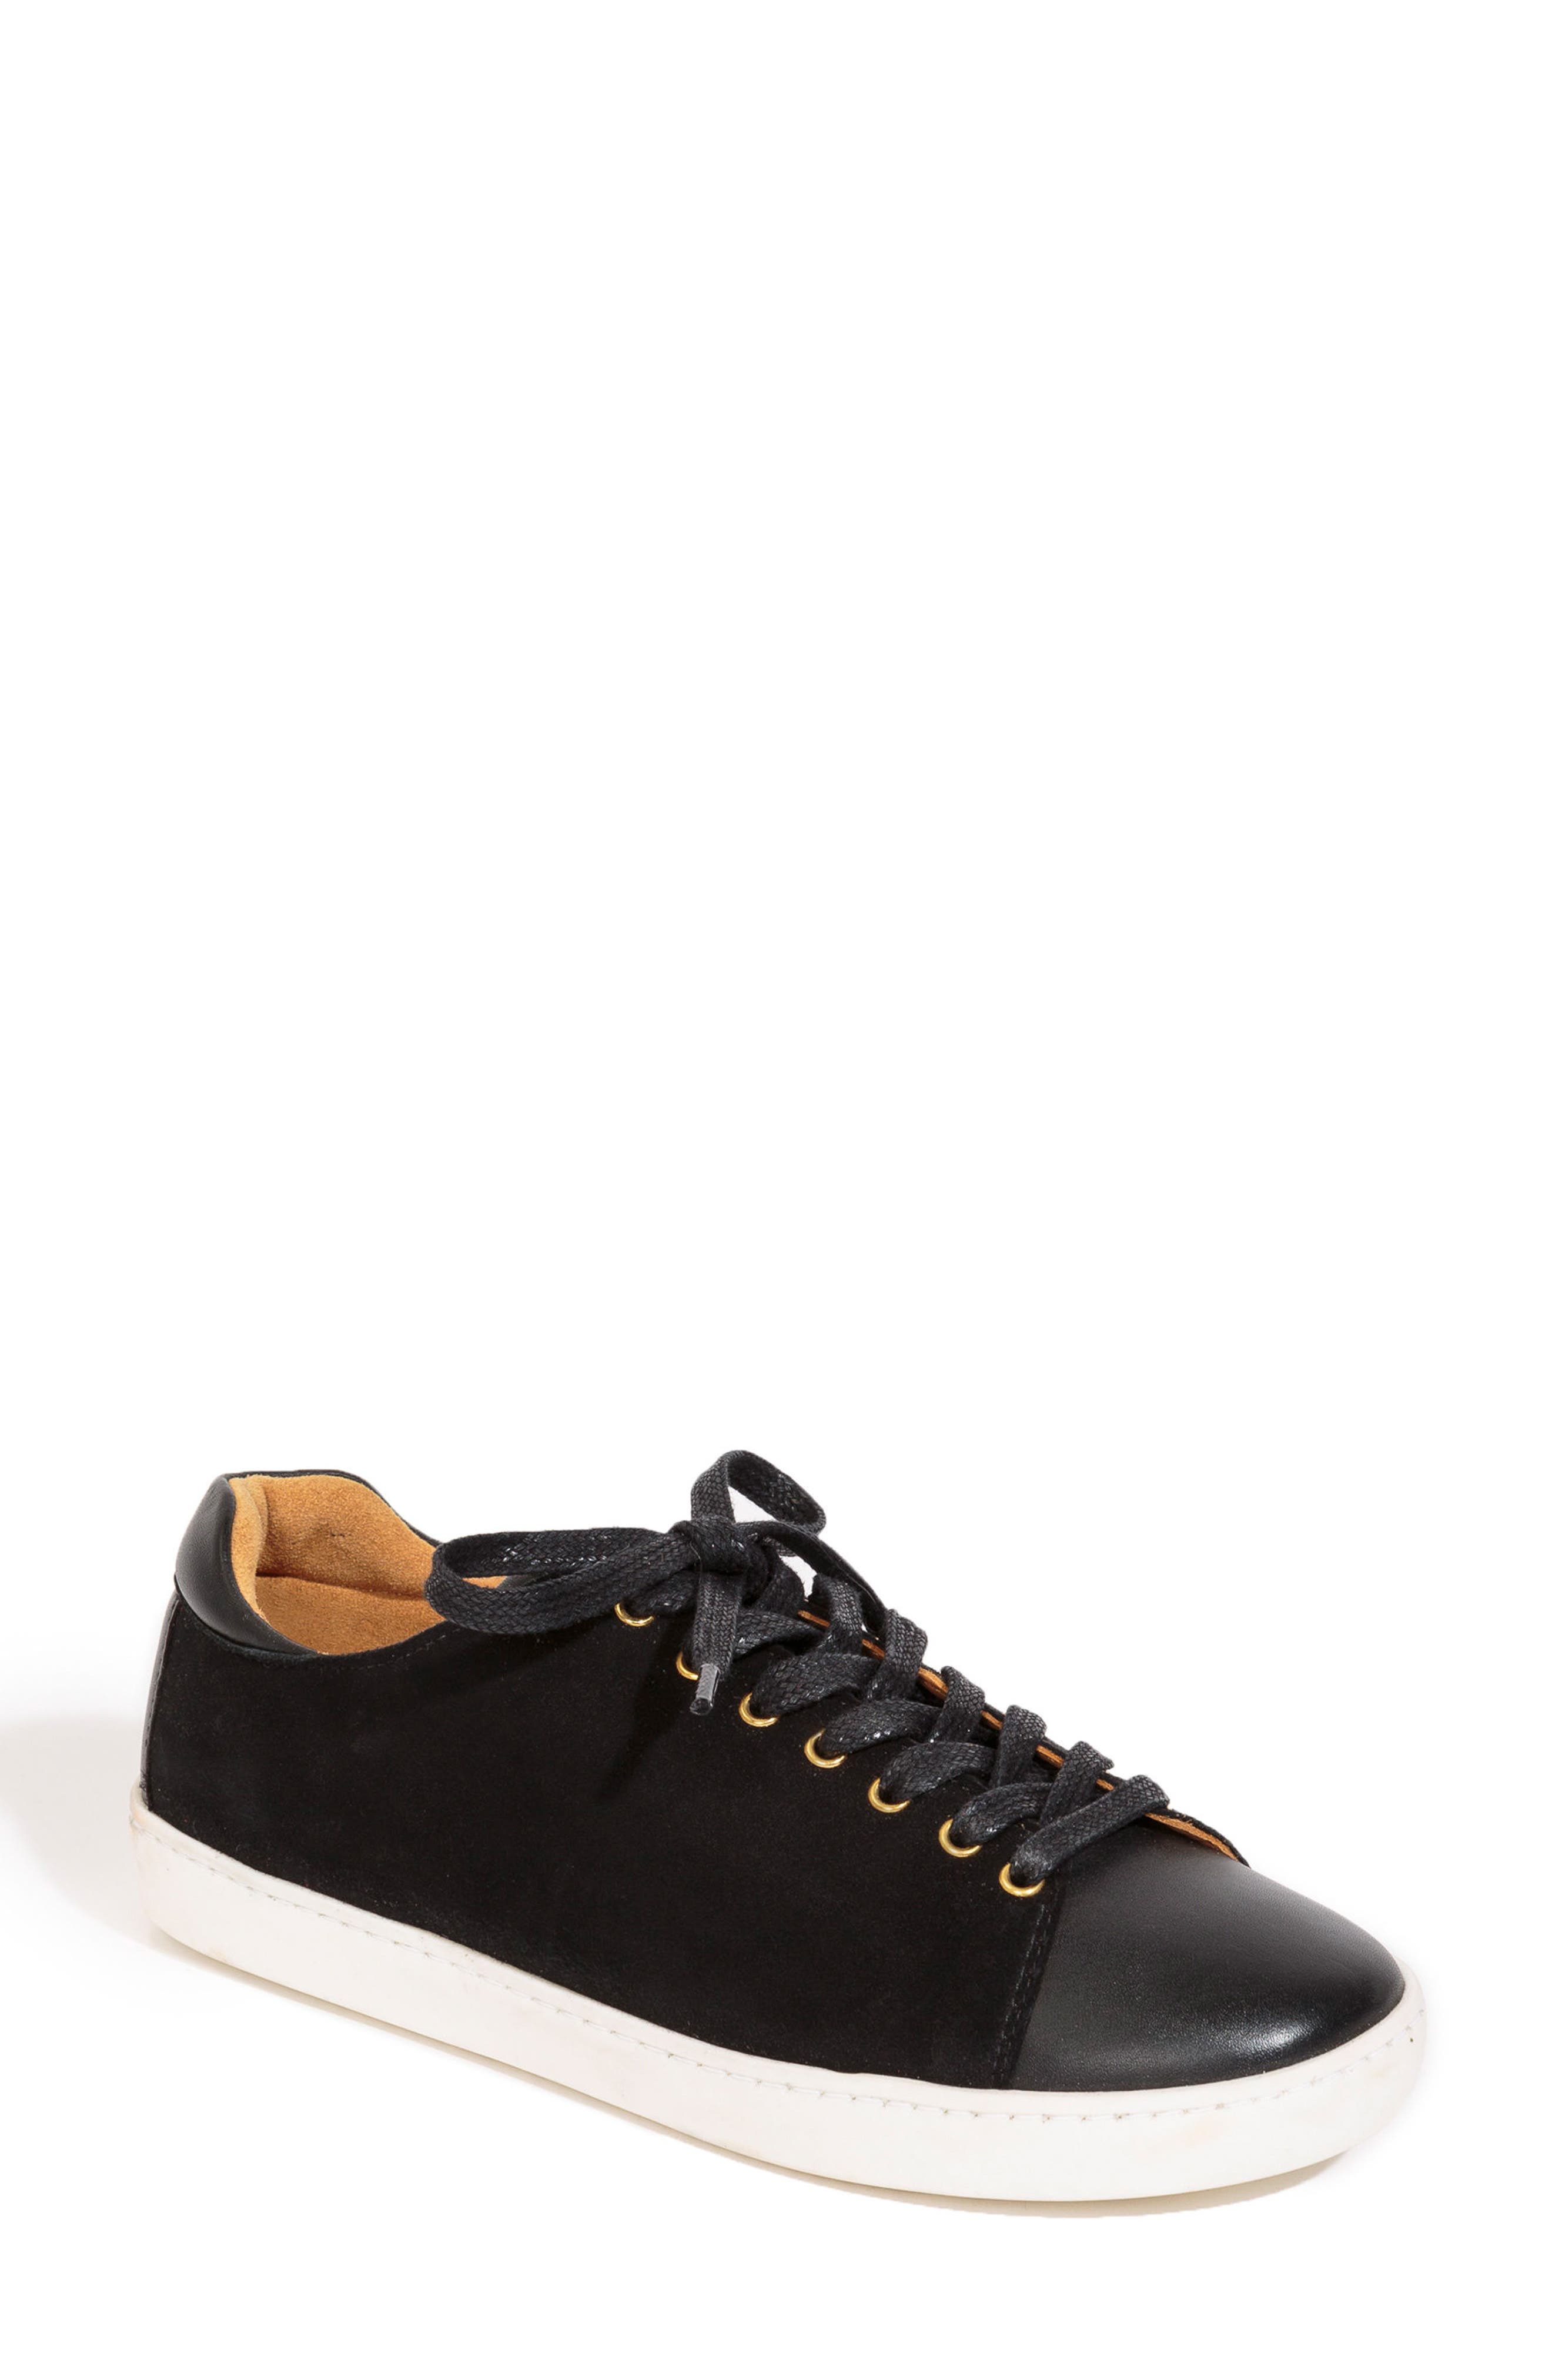 Jack Sneaker,                             Main thumbnail 1, color,                             BLACK SUEDE